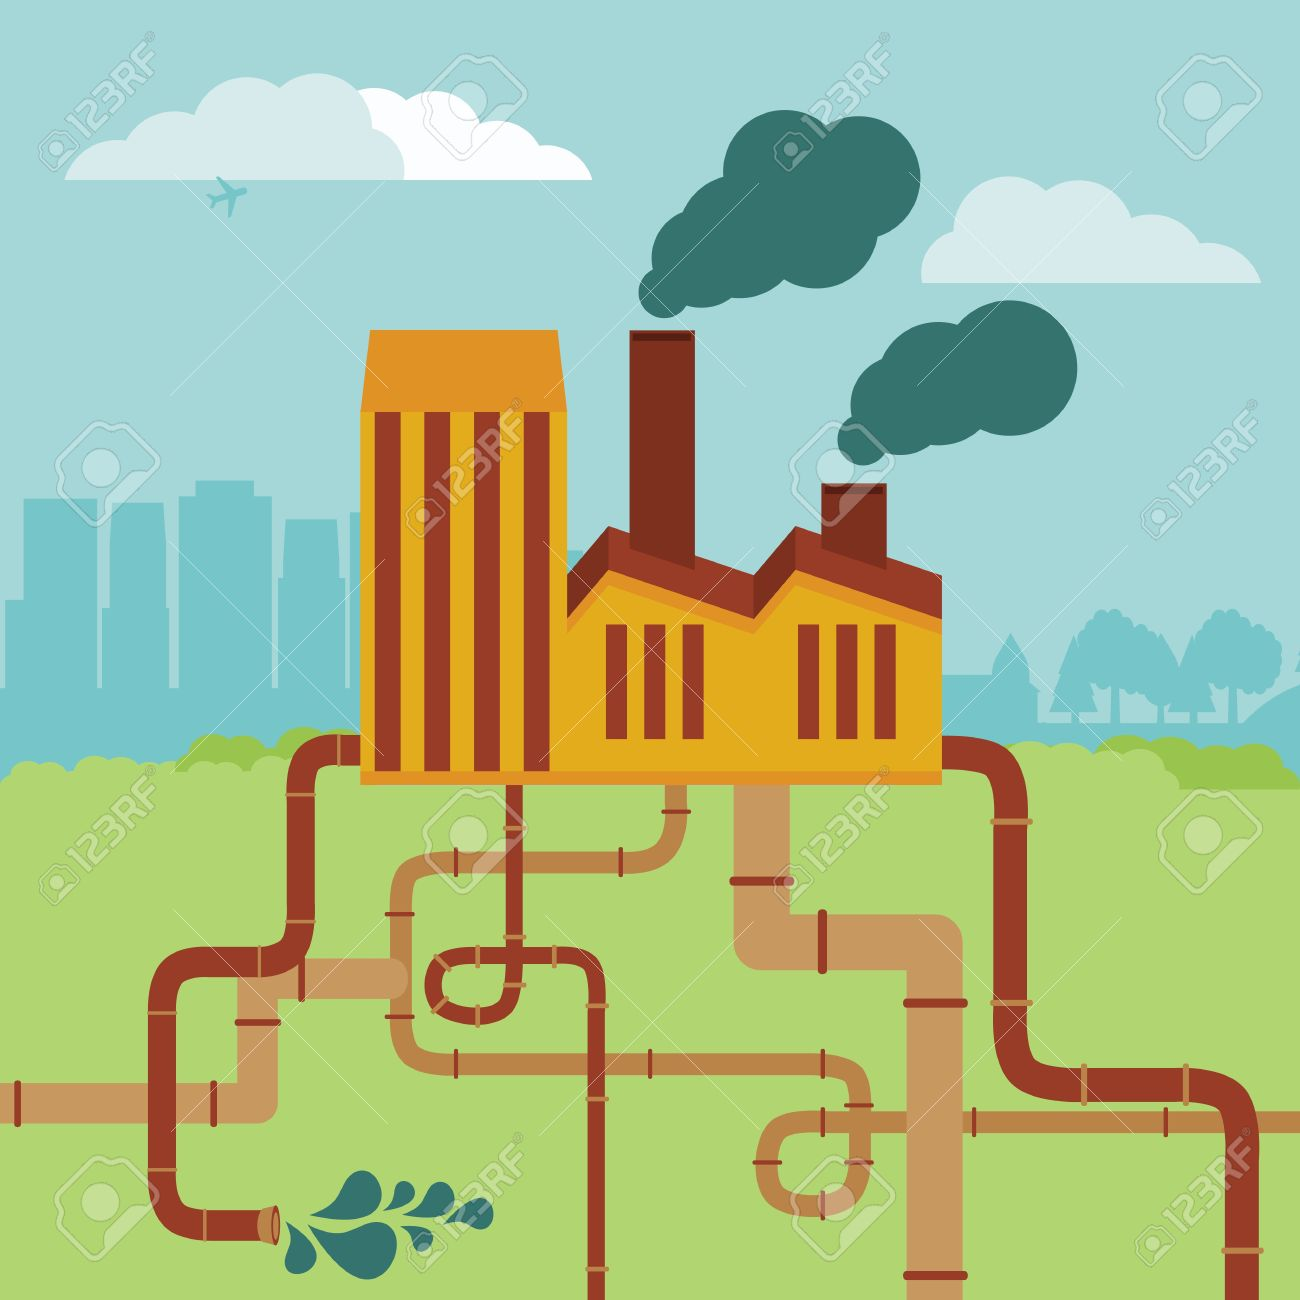 vector concept - factory building and landscape - air and soil